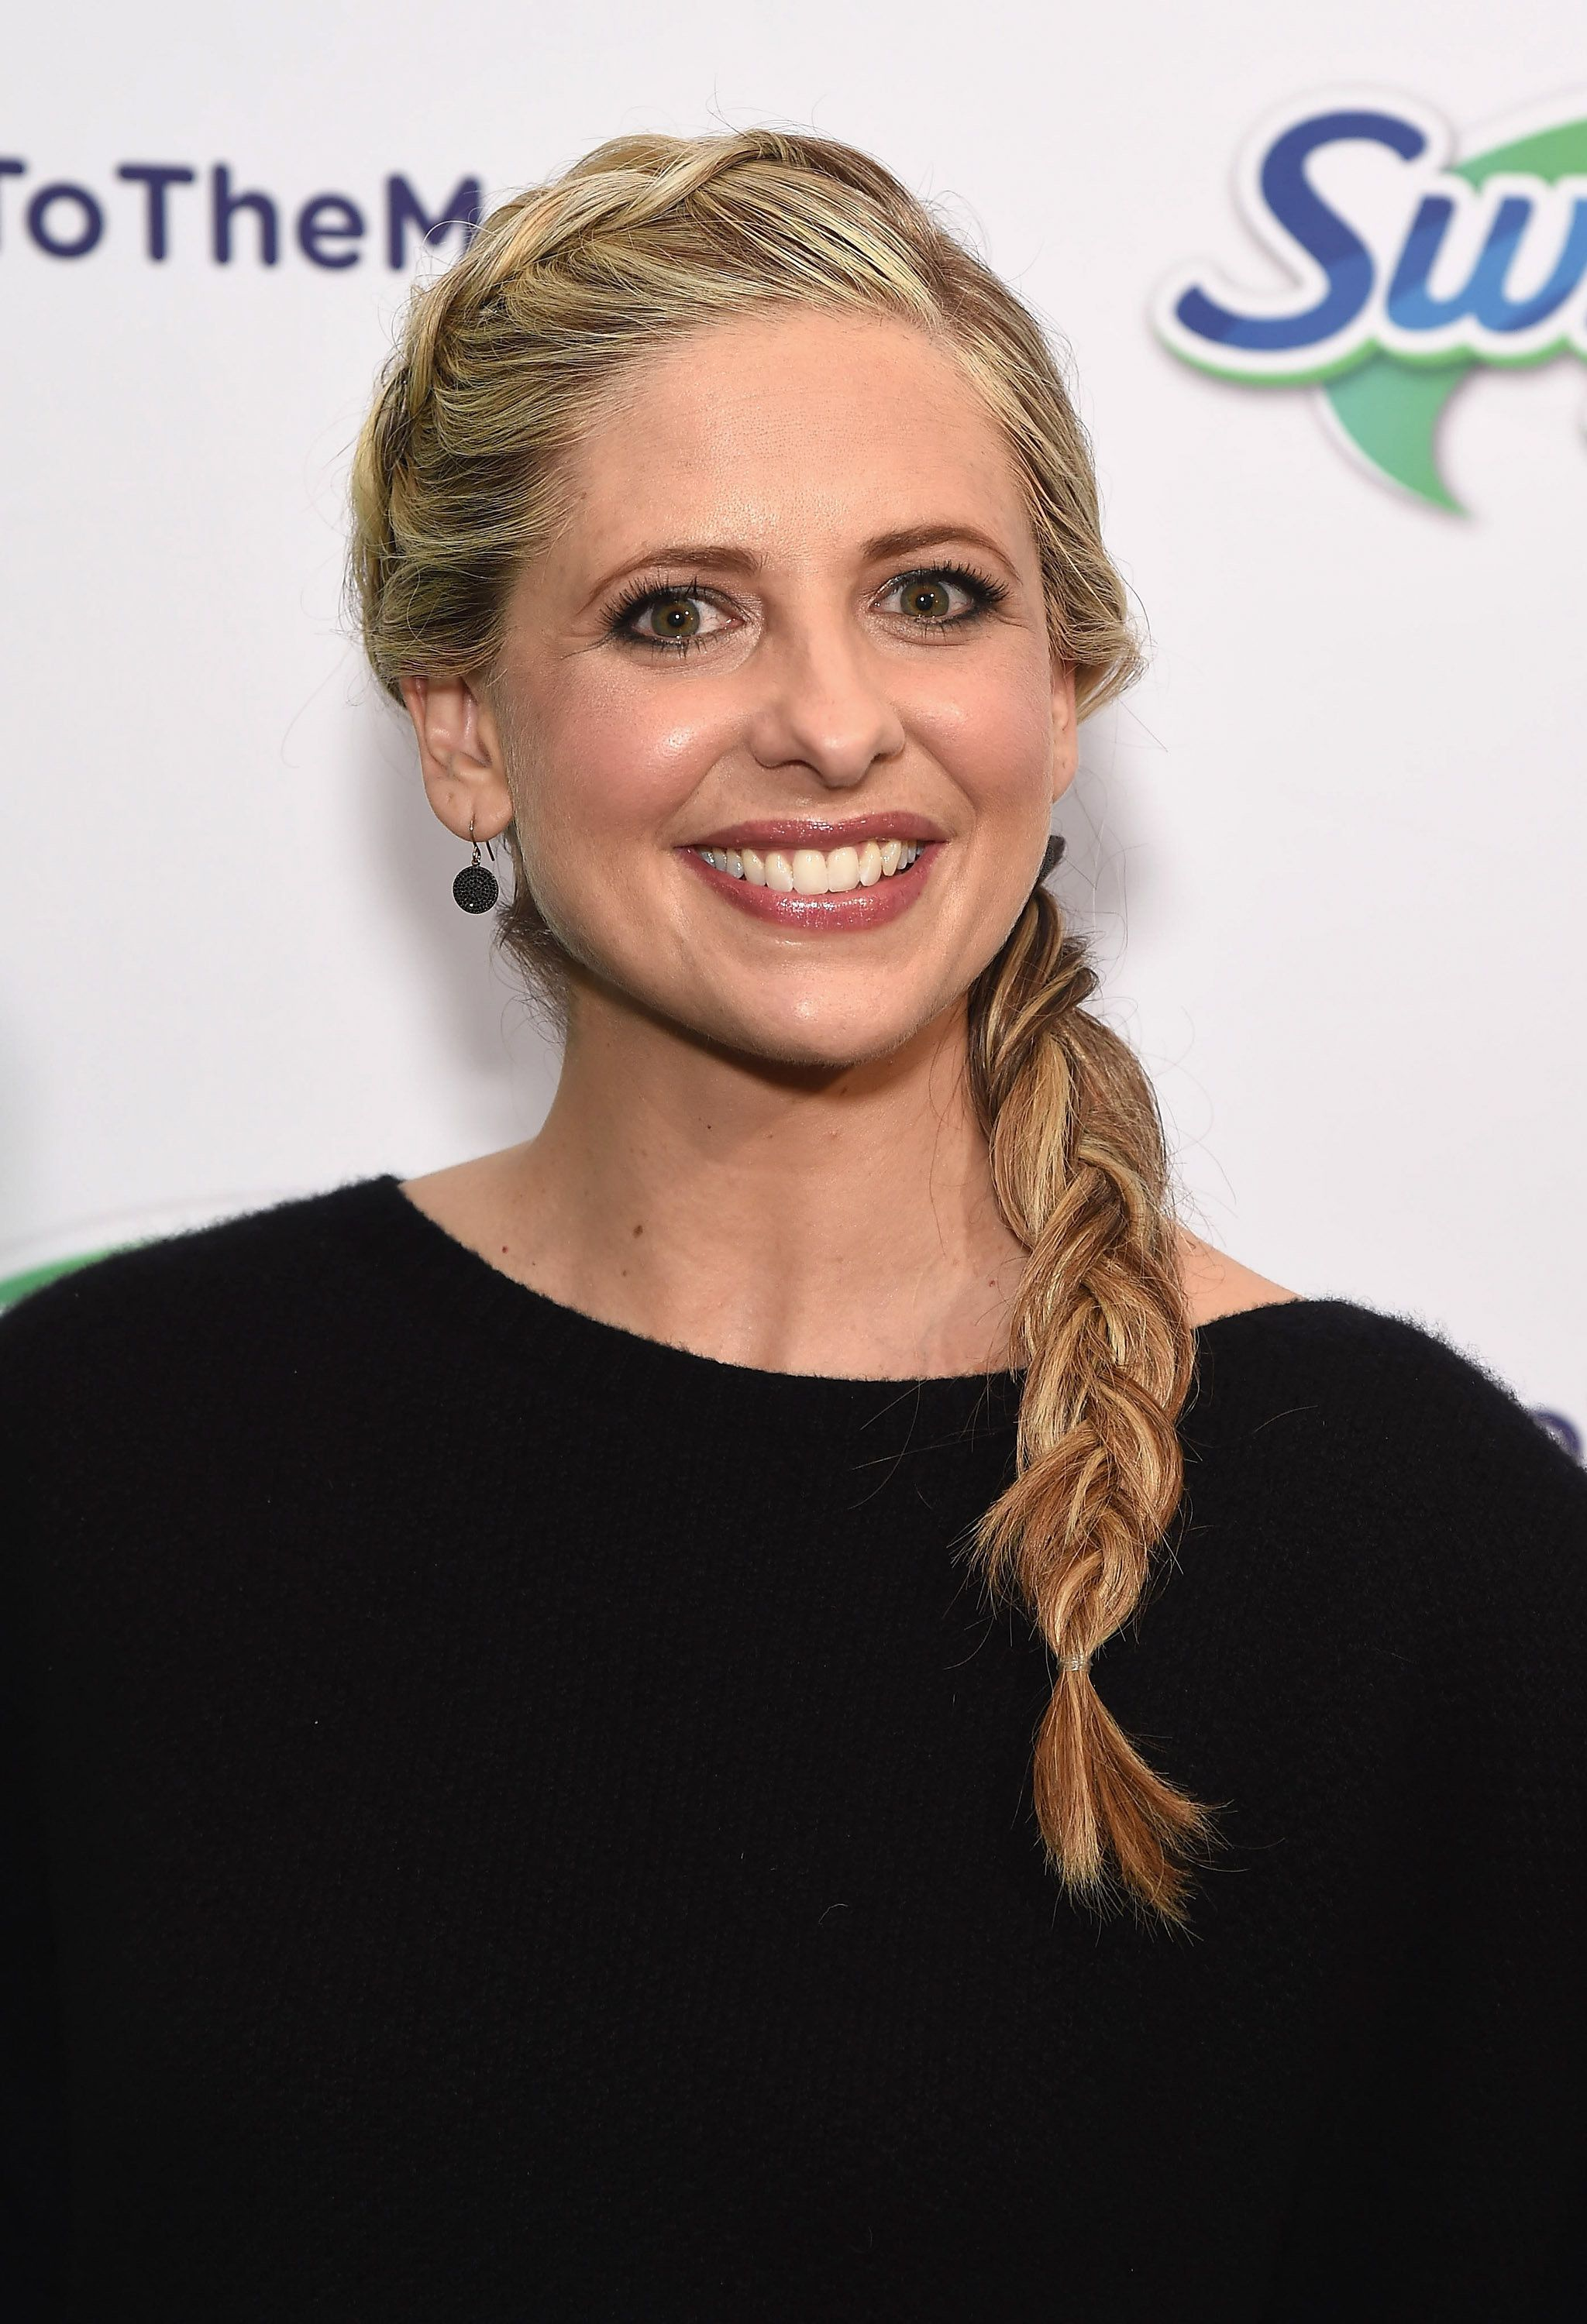 NEW YORK, NY - FEBRUARY 03:   Sarah Michelle Gellar & Swiffer encourage parents to say 'Yes To The Mess!'at Maman Bakery Tribeca on February 3, 2016 in New York City.  (Photo by Gary Gershoff/WireImage)